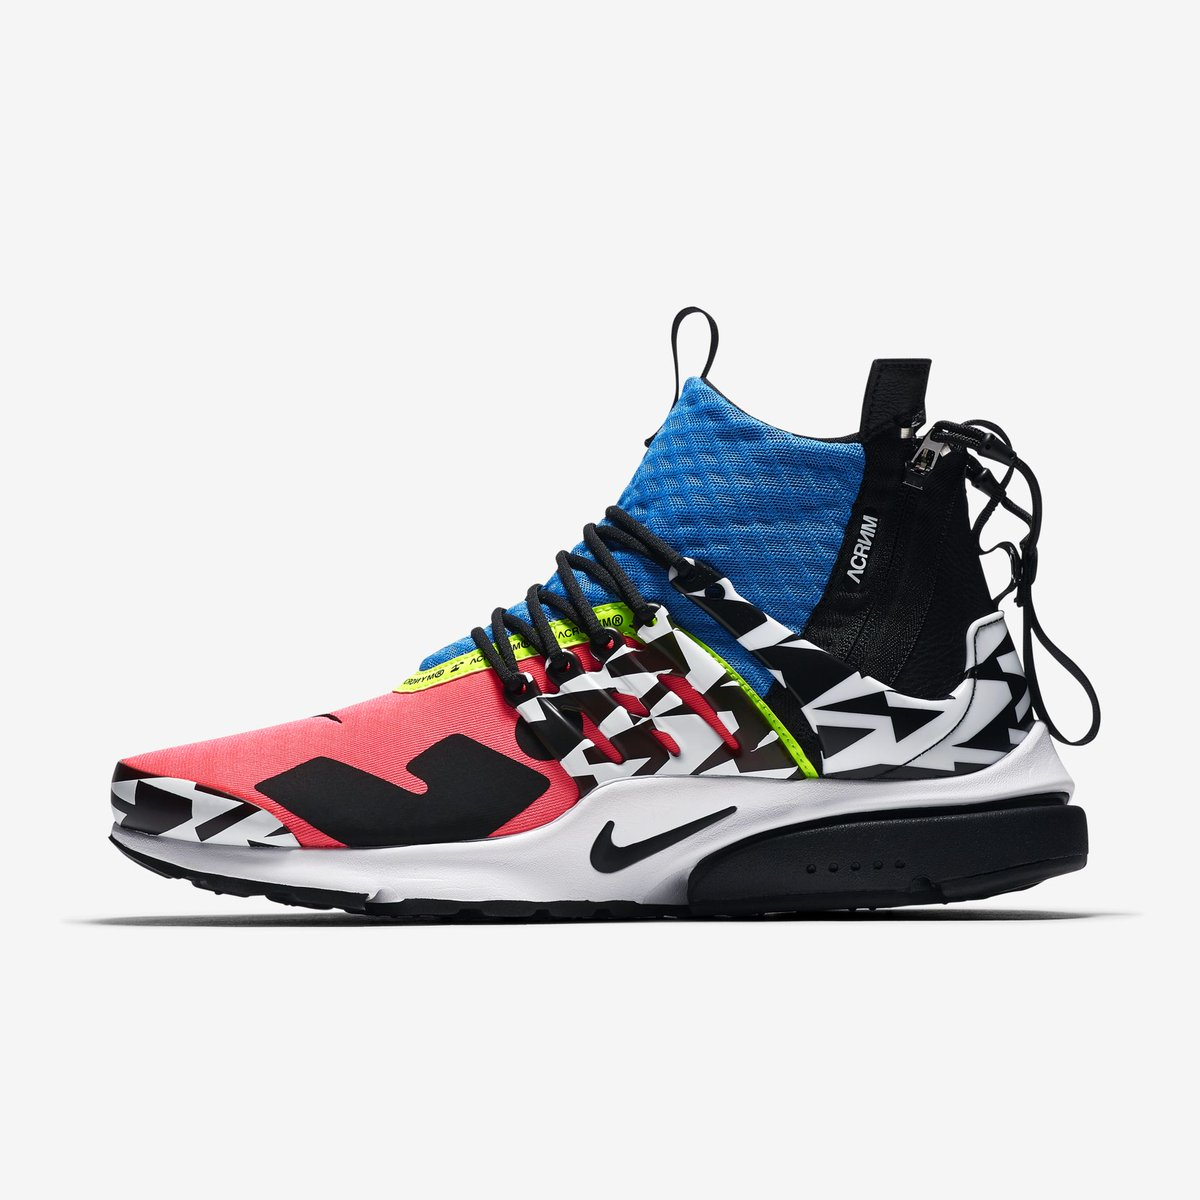 new product 2be73 e3264 Acronym x Nike Air Presto Mid 😳 🔥 pic.twitter.comM3IDT696jX. 1027 AM -  23 Aug 2018